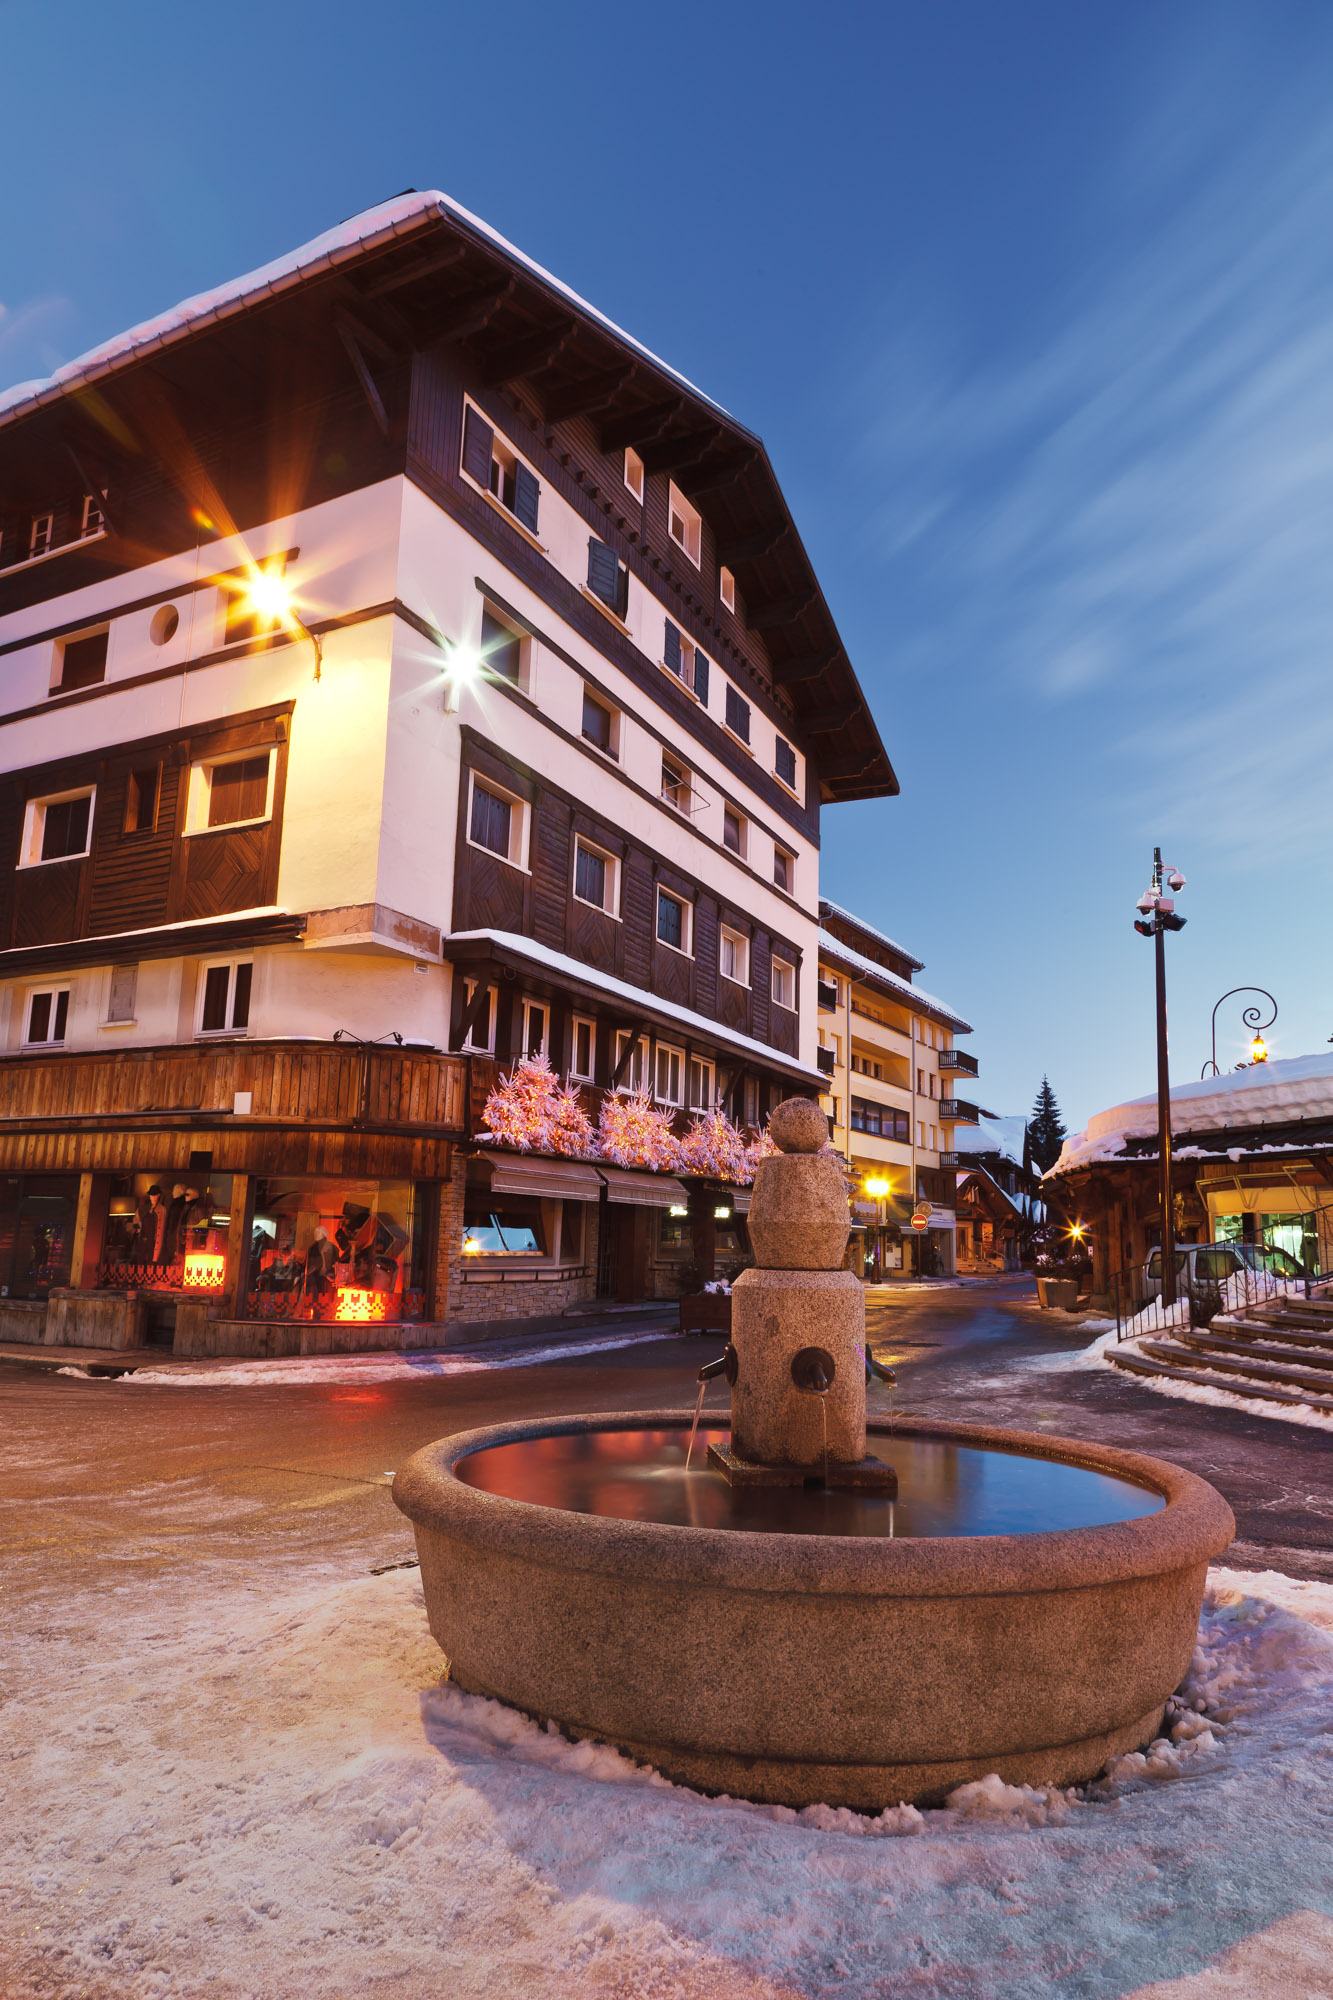 Fountain in Megeve, France